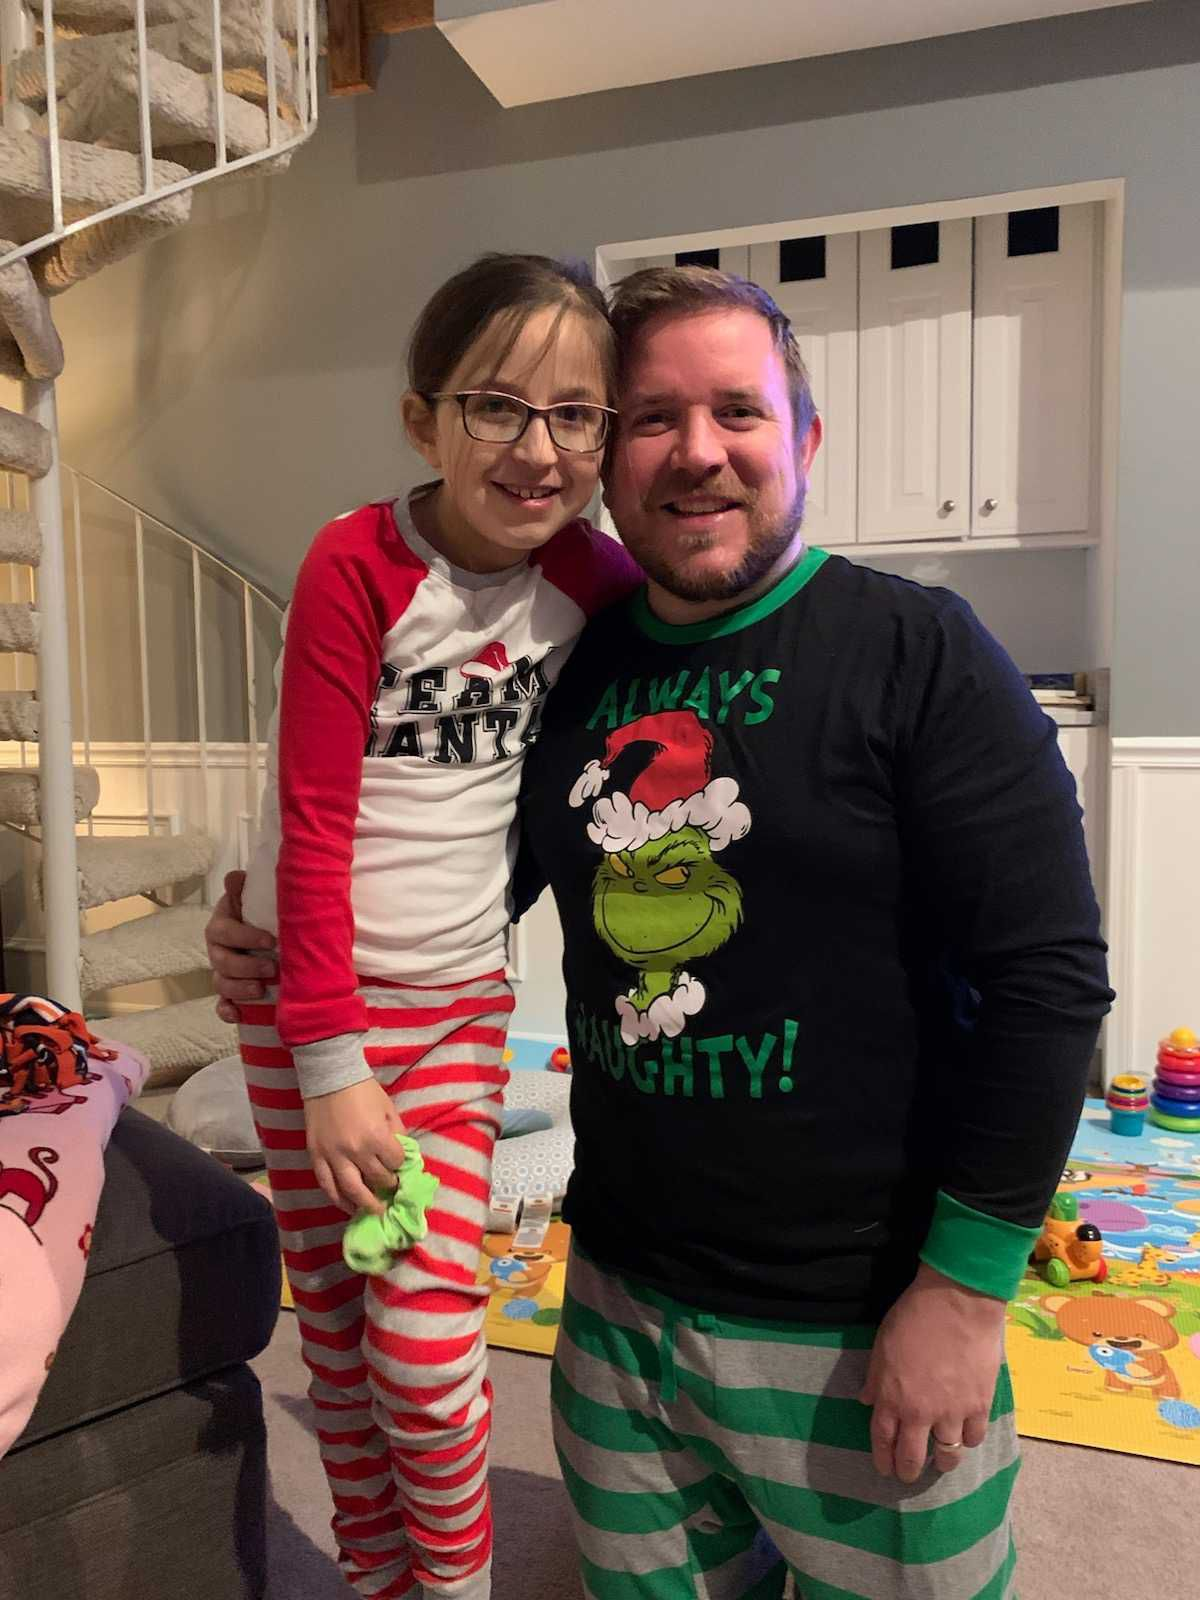 Brian Donnelly, shown with daughter Olivia at the family's Naperville home.